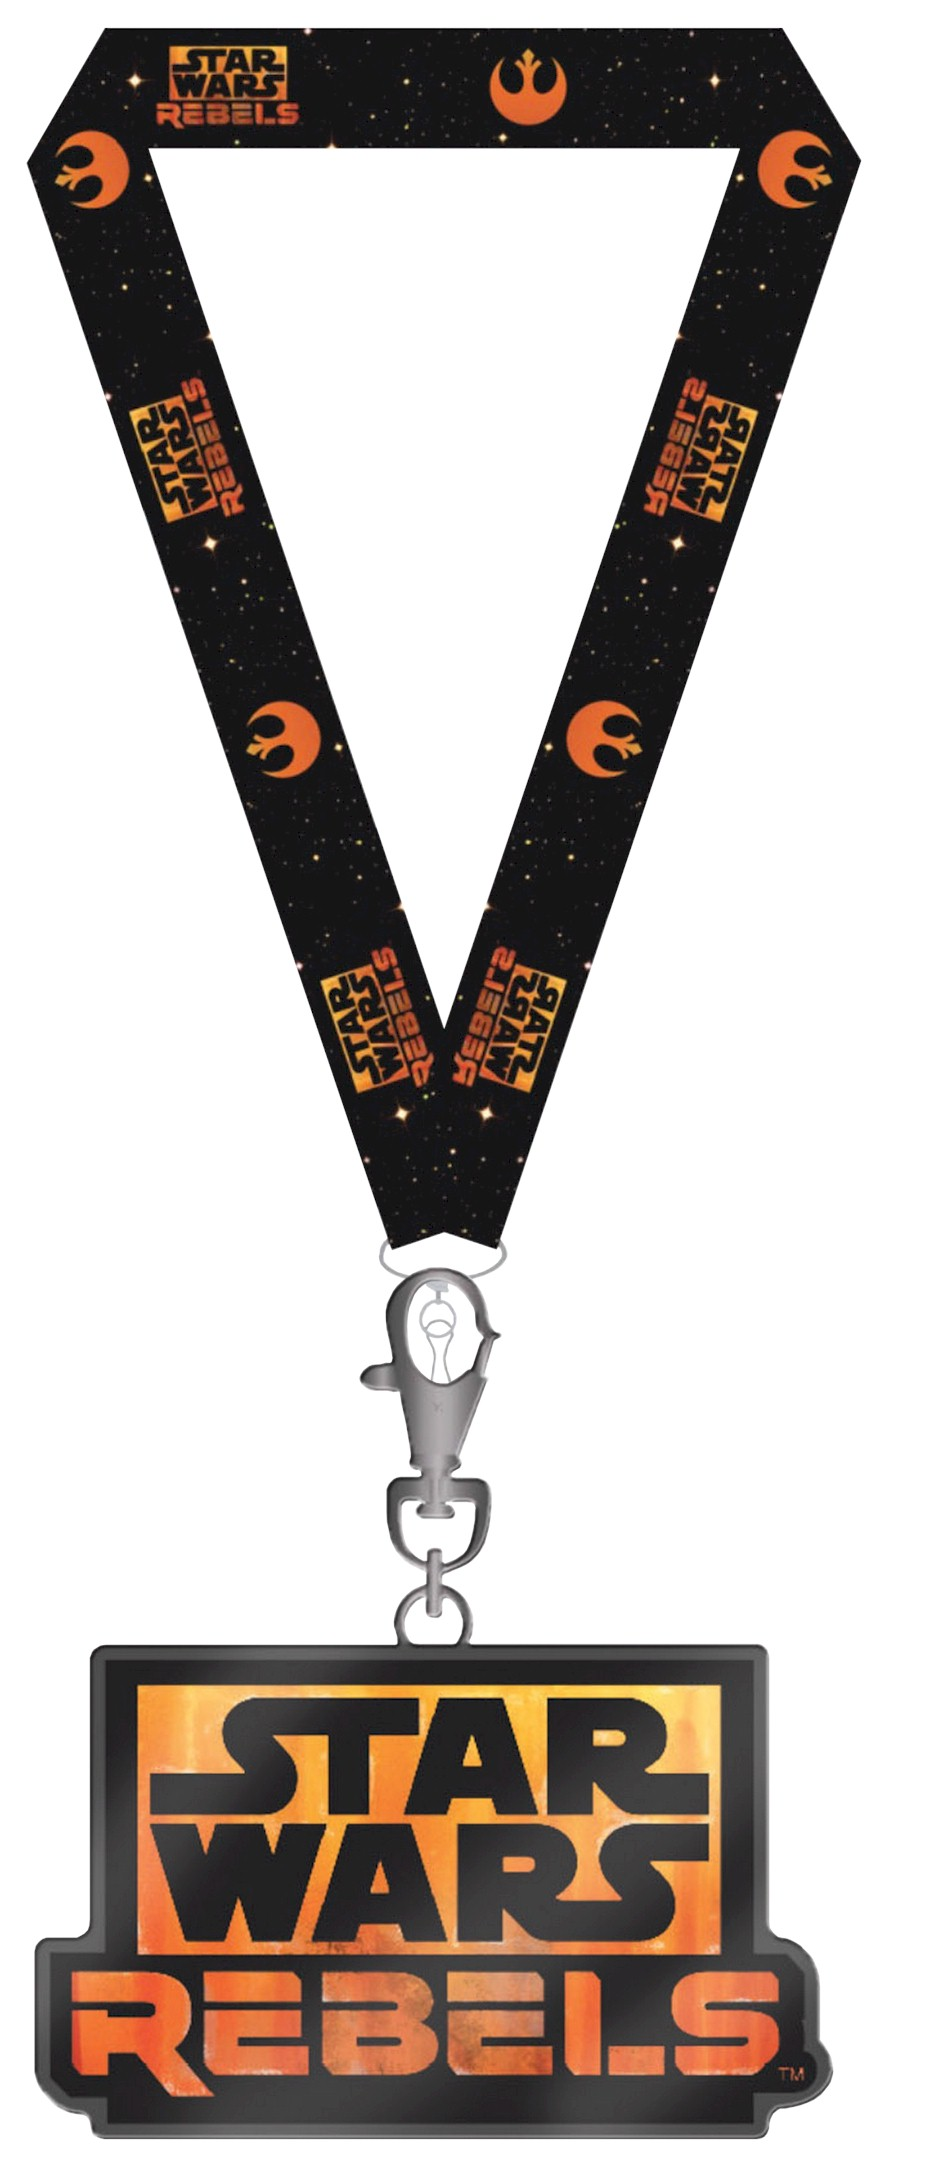 Limited Edition Star Wars REBELS Recruitment Pack Lanyard and Medal ~ Disney Star Wars Weekends 2014